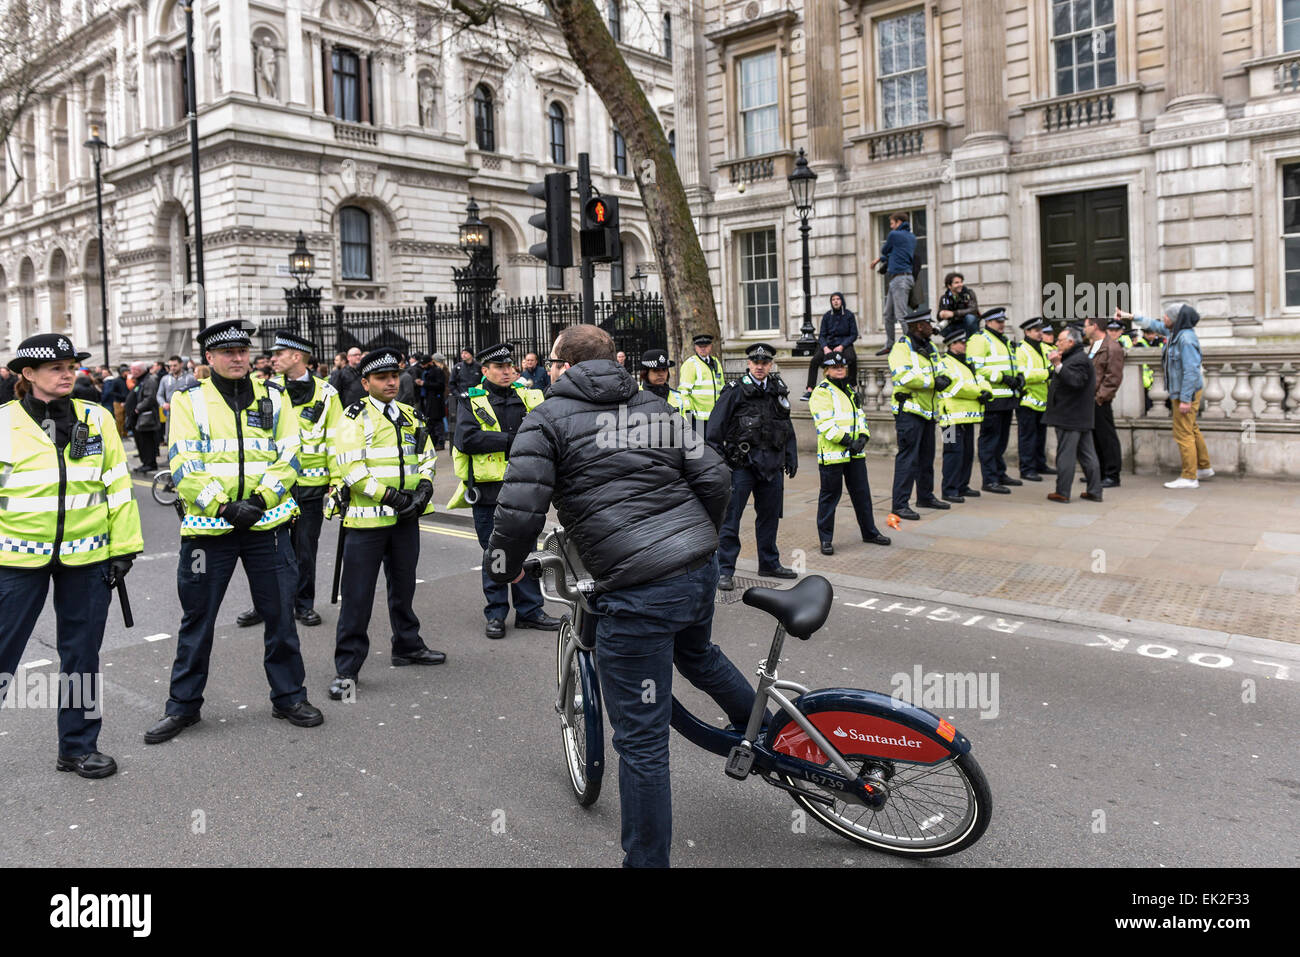 A cyclist attempting to ride through a police cordon in Whitehall. Stock Photo